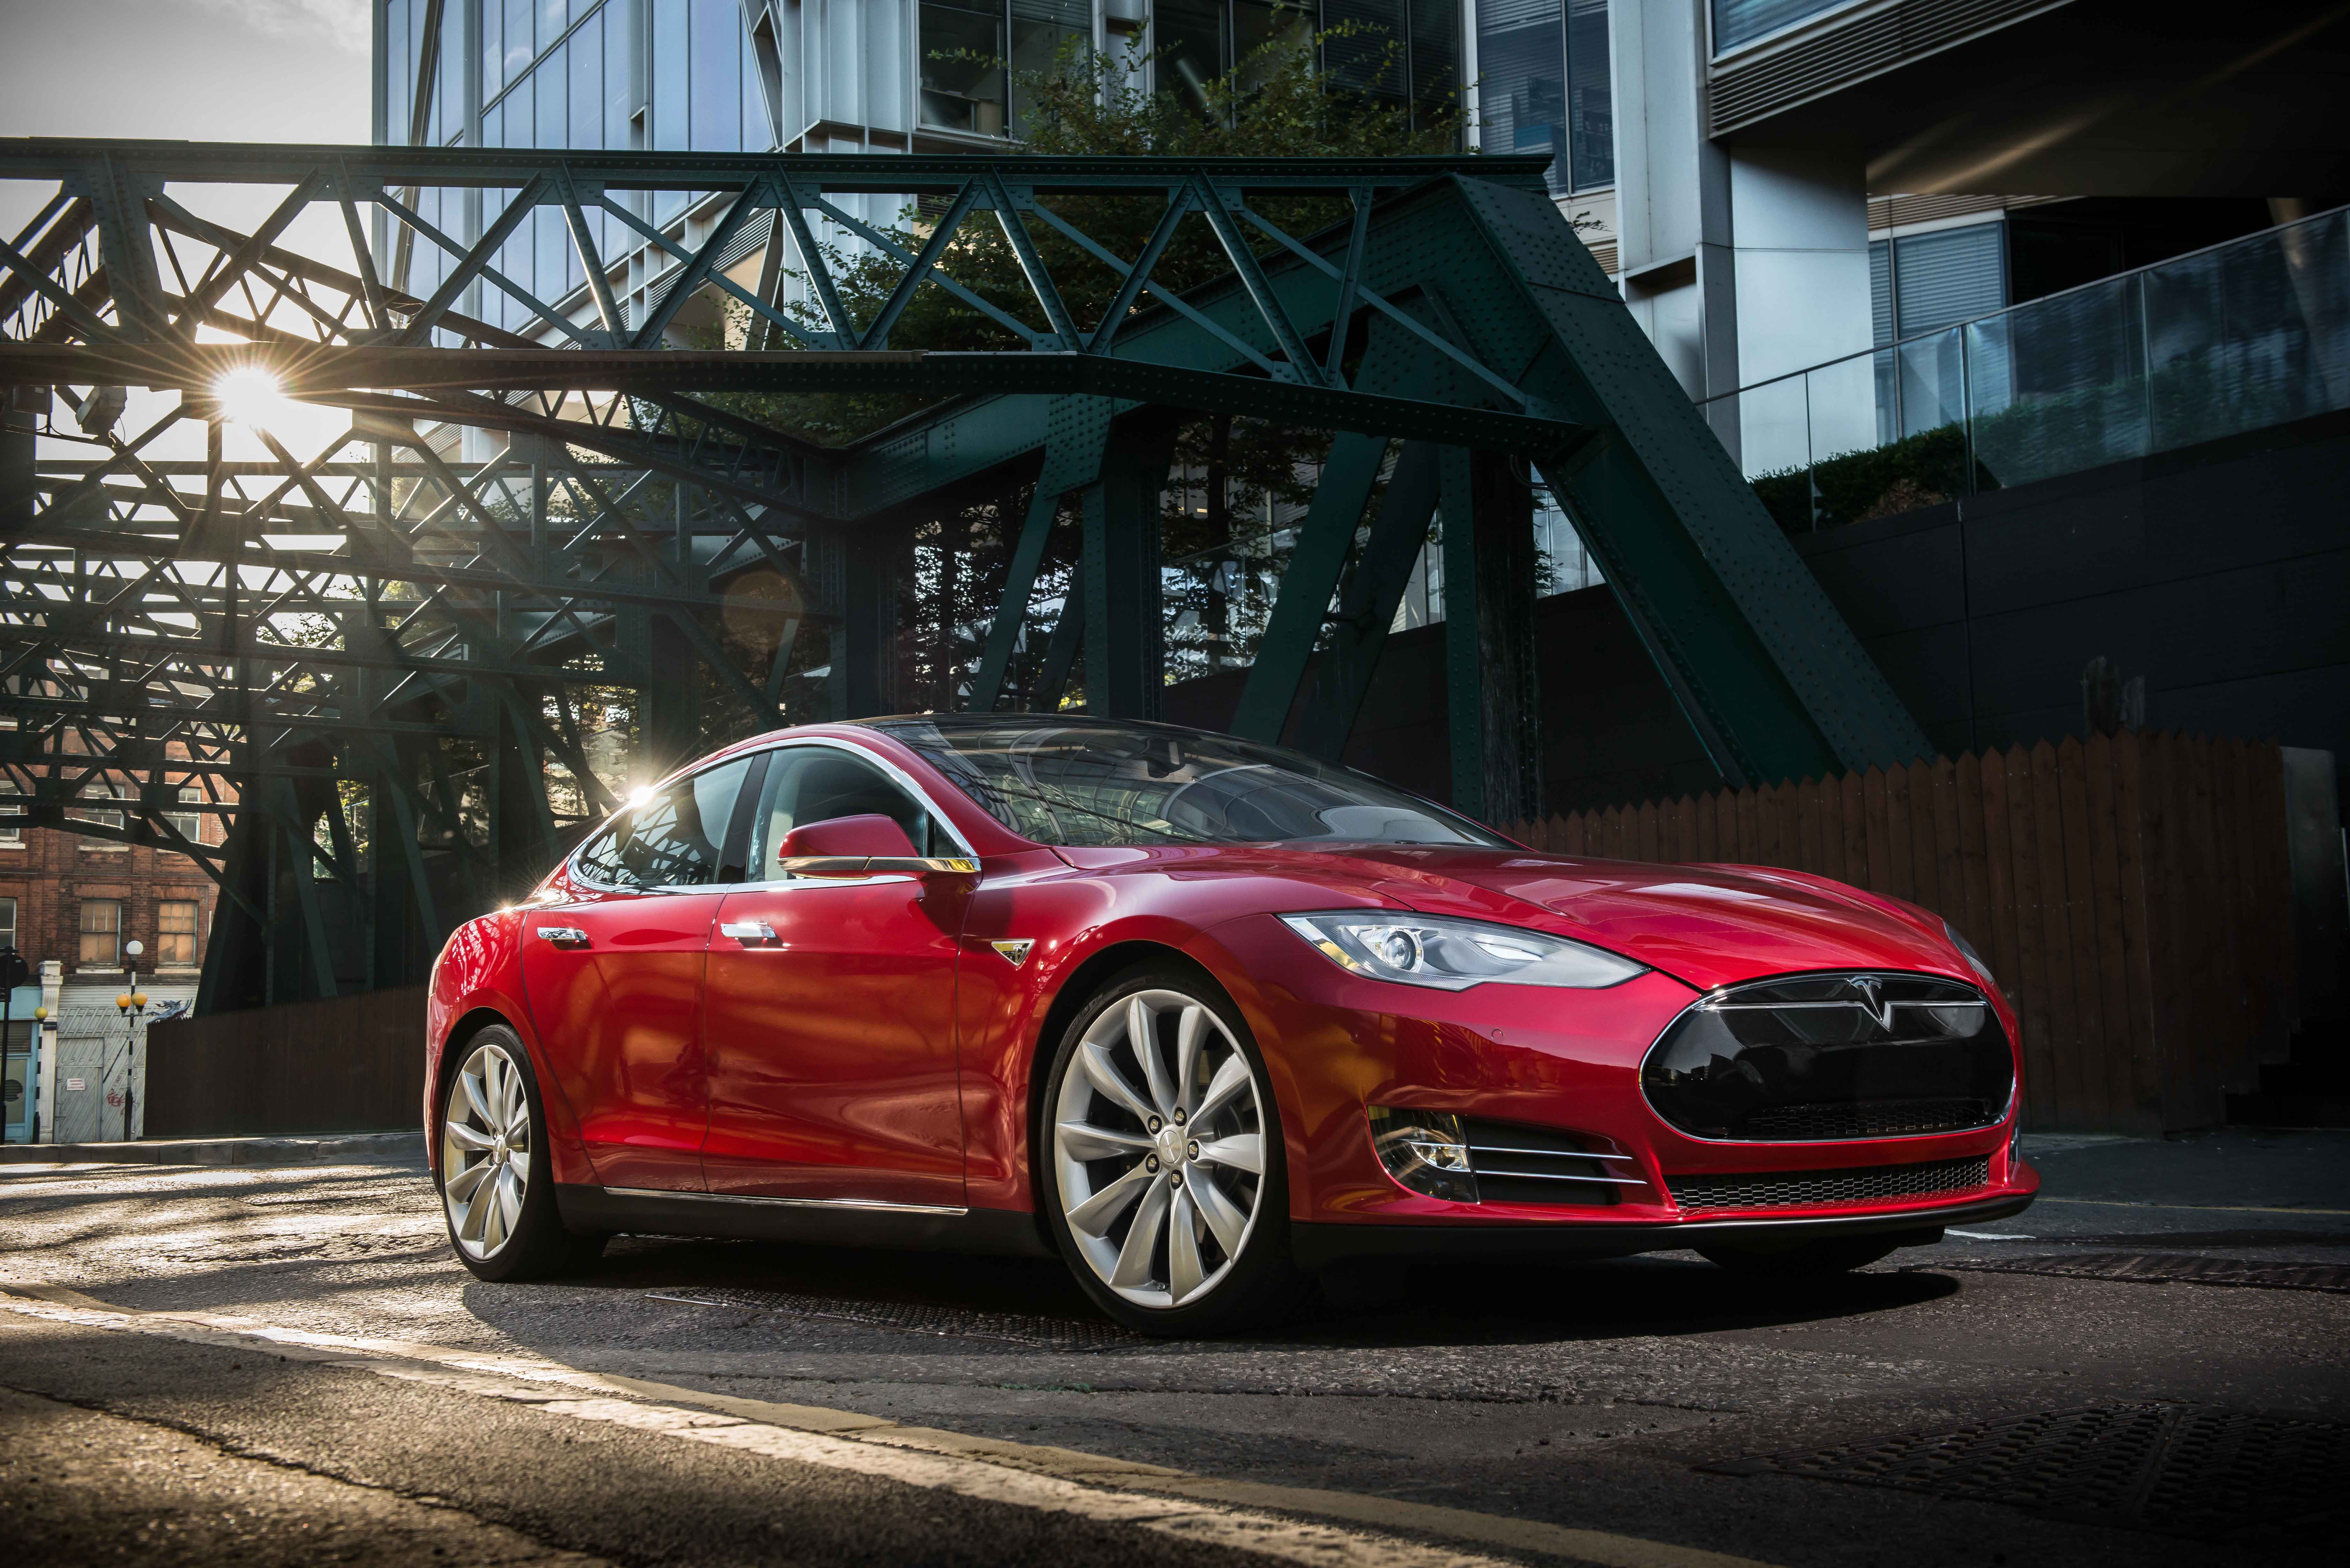 The spectacular Tesla Model S is much less commercially viable in Singapore than the practical Hyundai Ioniq Electric.